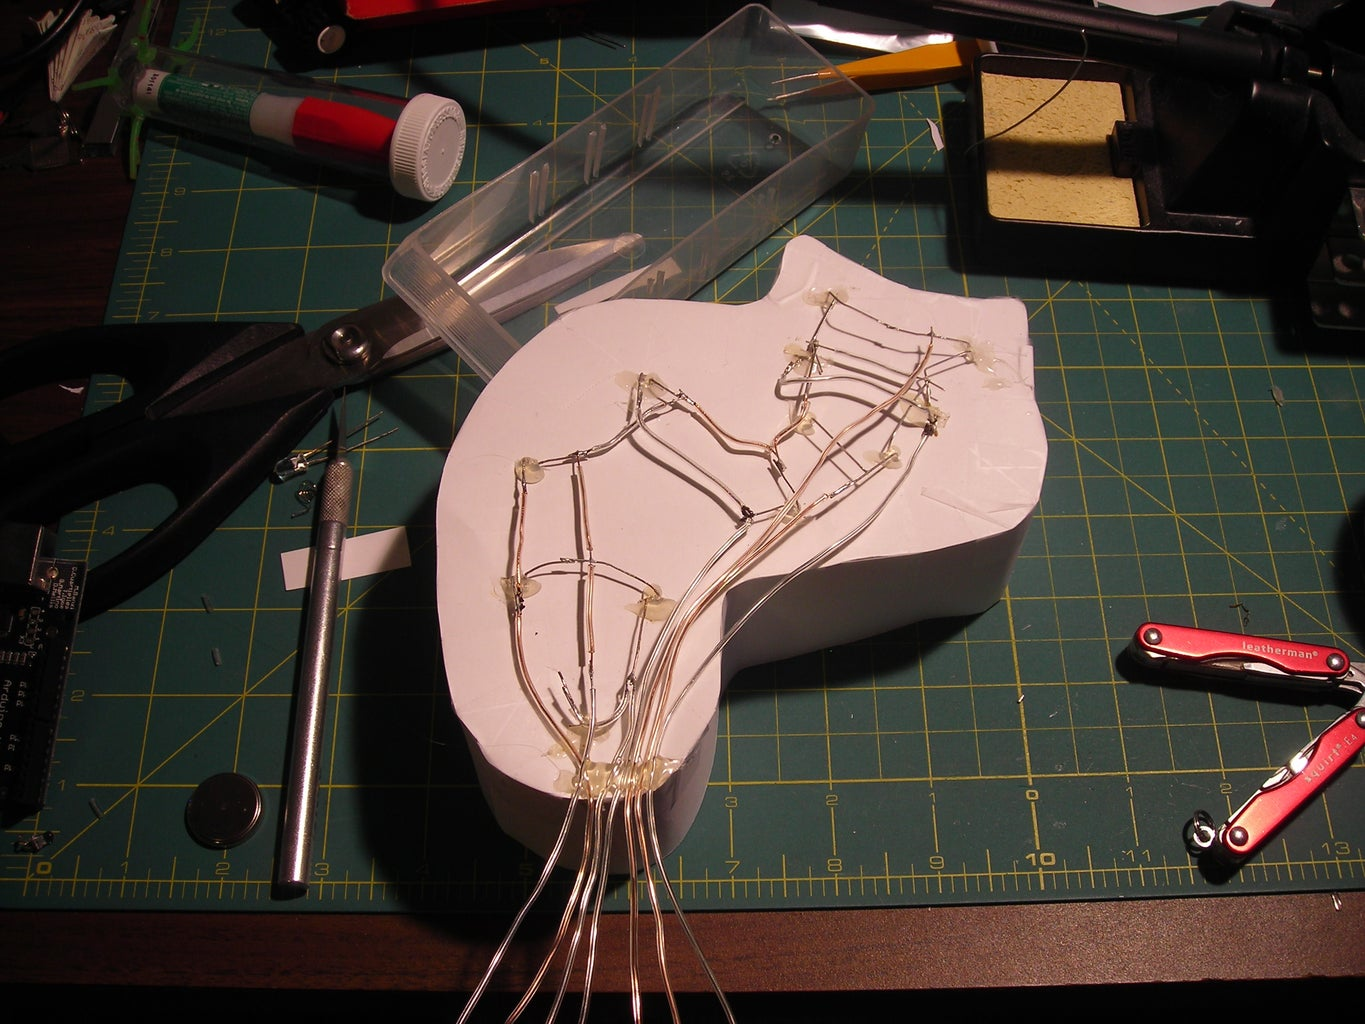 Solder and Program the Electronics